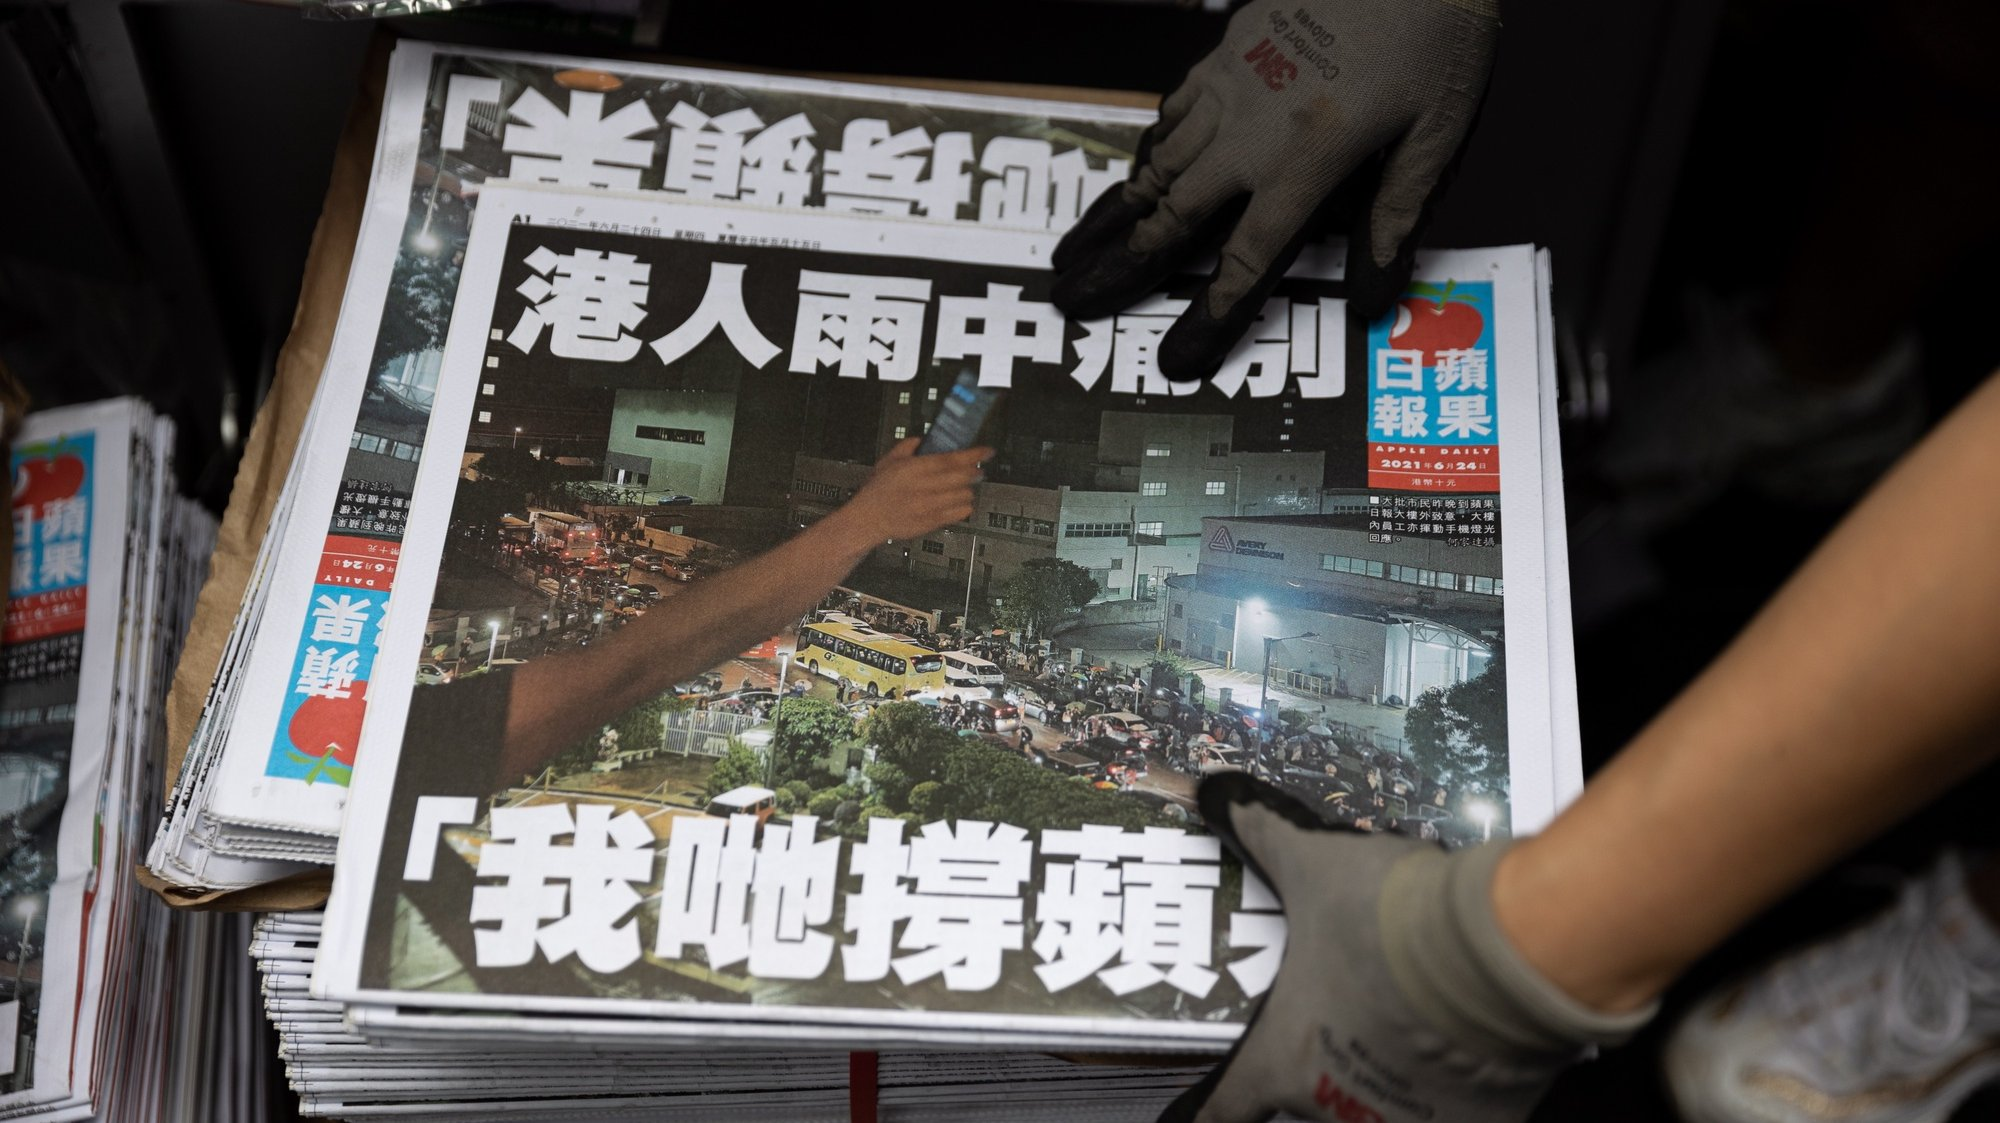 epa09297881 A salesperson stocks Apple Daily's final issue at a news stand in Central, Hong Kong, China, 24 June 2021. The last edition of Apple Daily rolled off the presses three days earlier than expected, after management took into consideration the safety of its staff and manpower concerns.  EPA/JEROME FAVRE